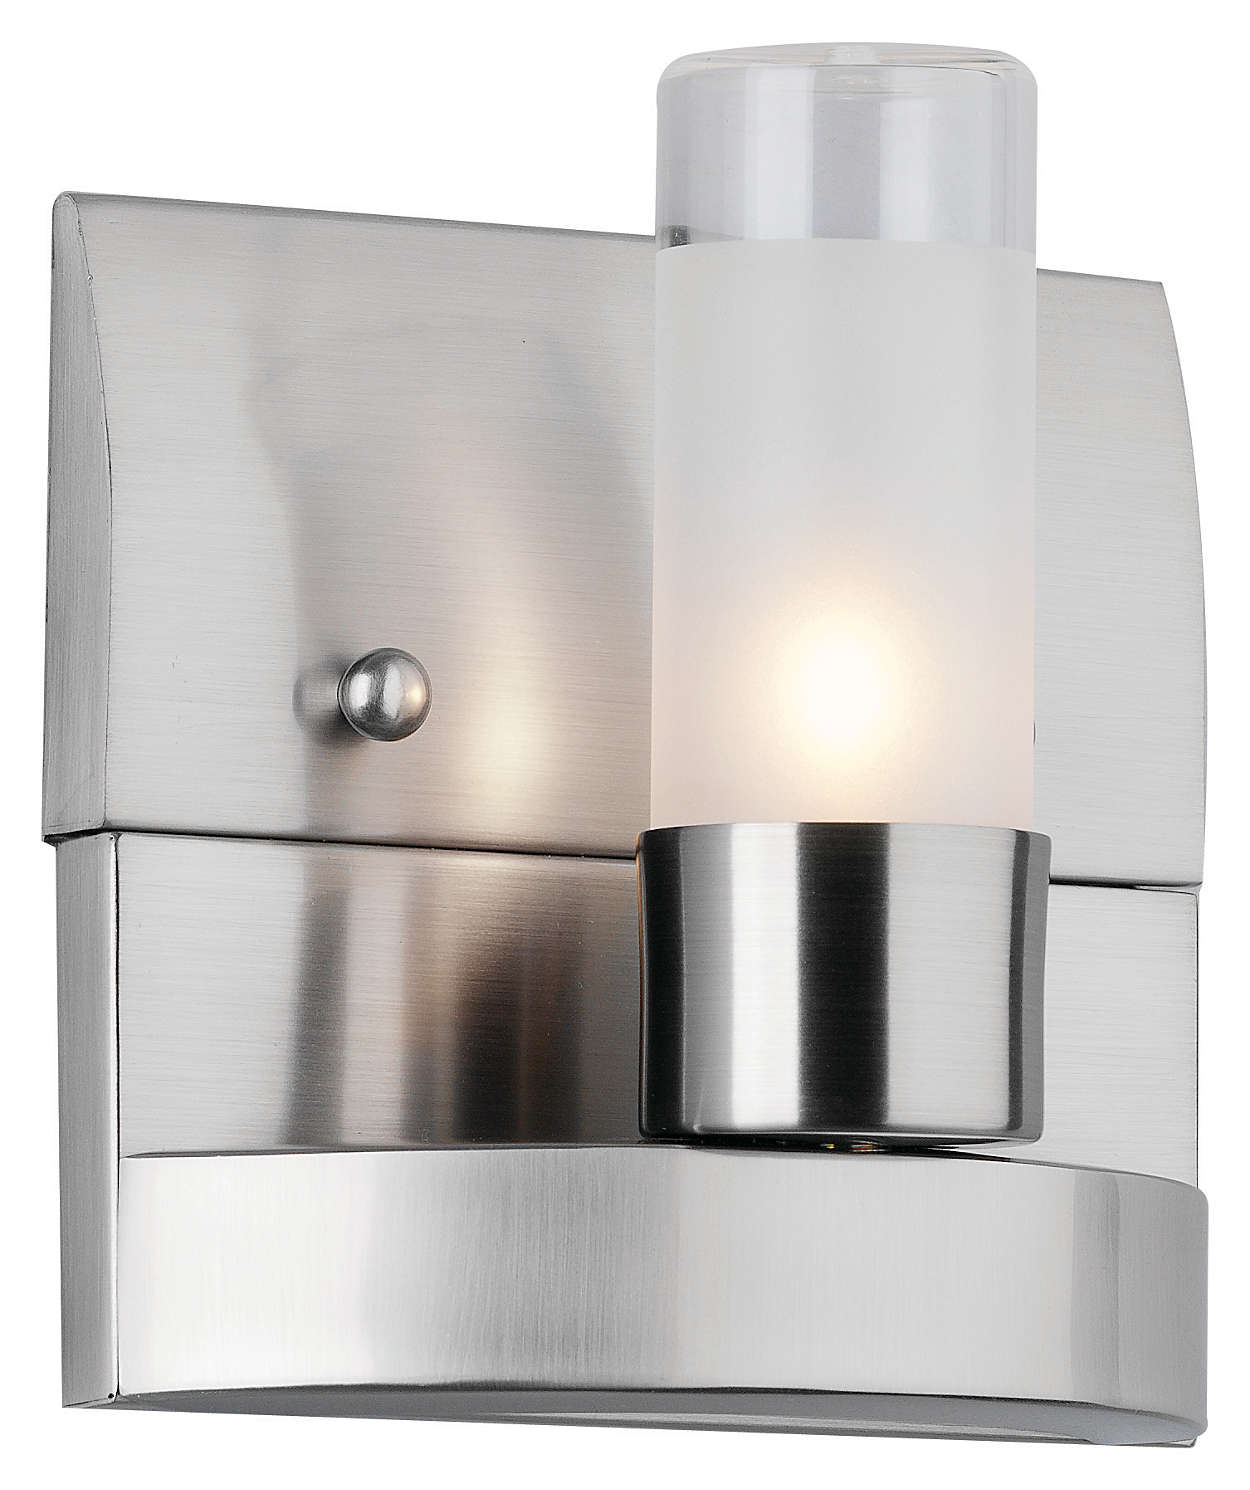 Revolution 1-light Bath in Satin Nickel finish